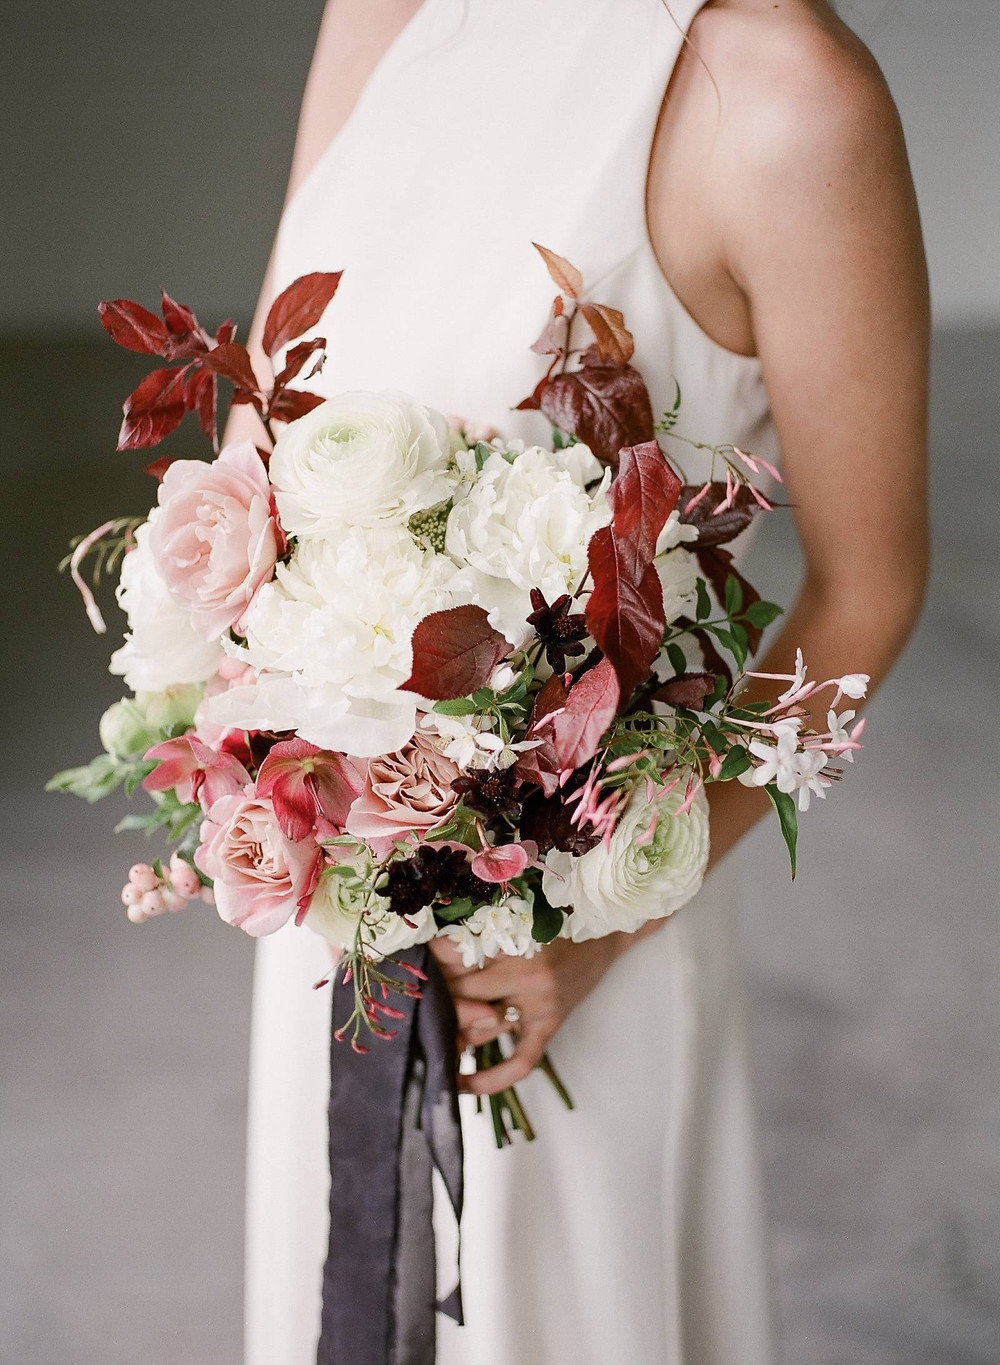 Bridal bouquet by Studio Bloom Iowa of roses, ranunculus, peonies, plum, and flowering branches in mauve and burgundy